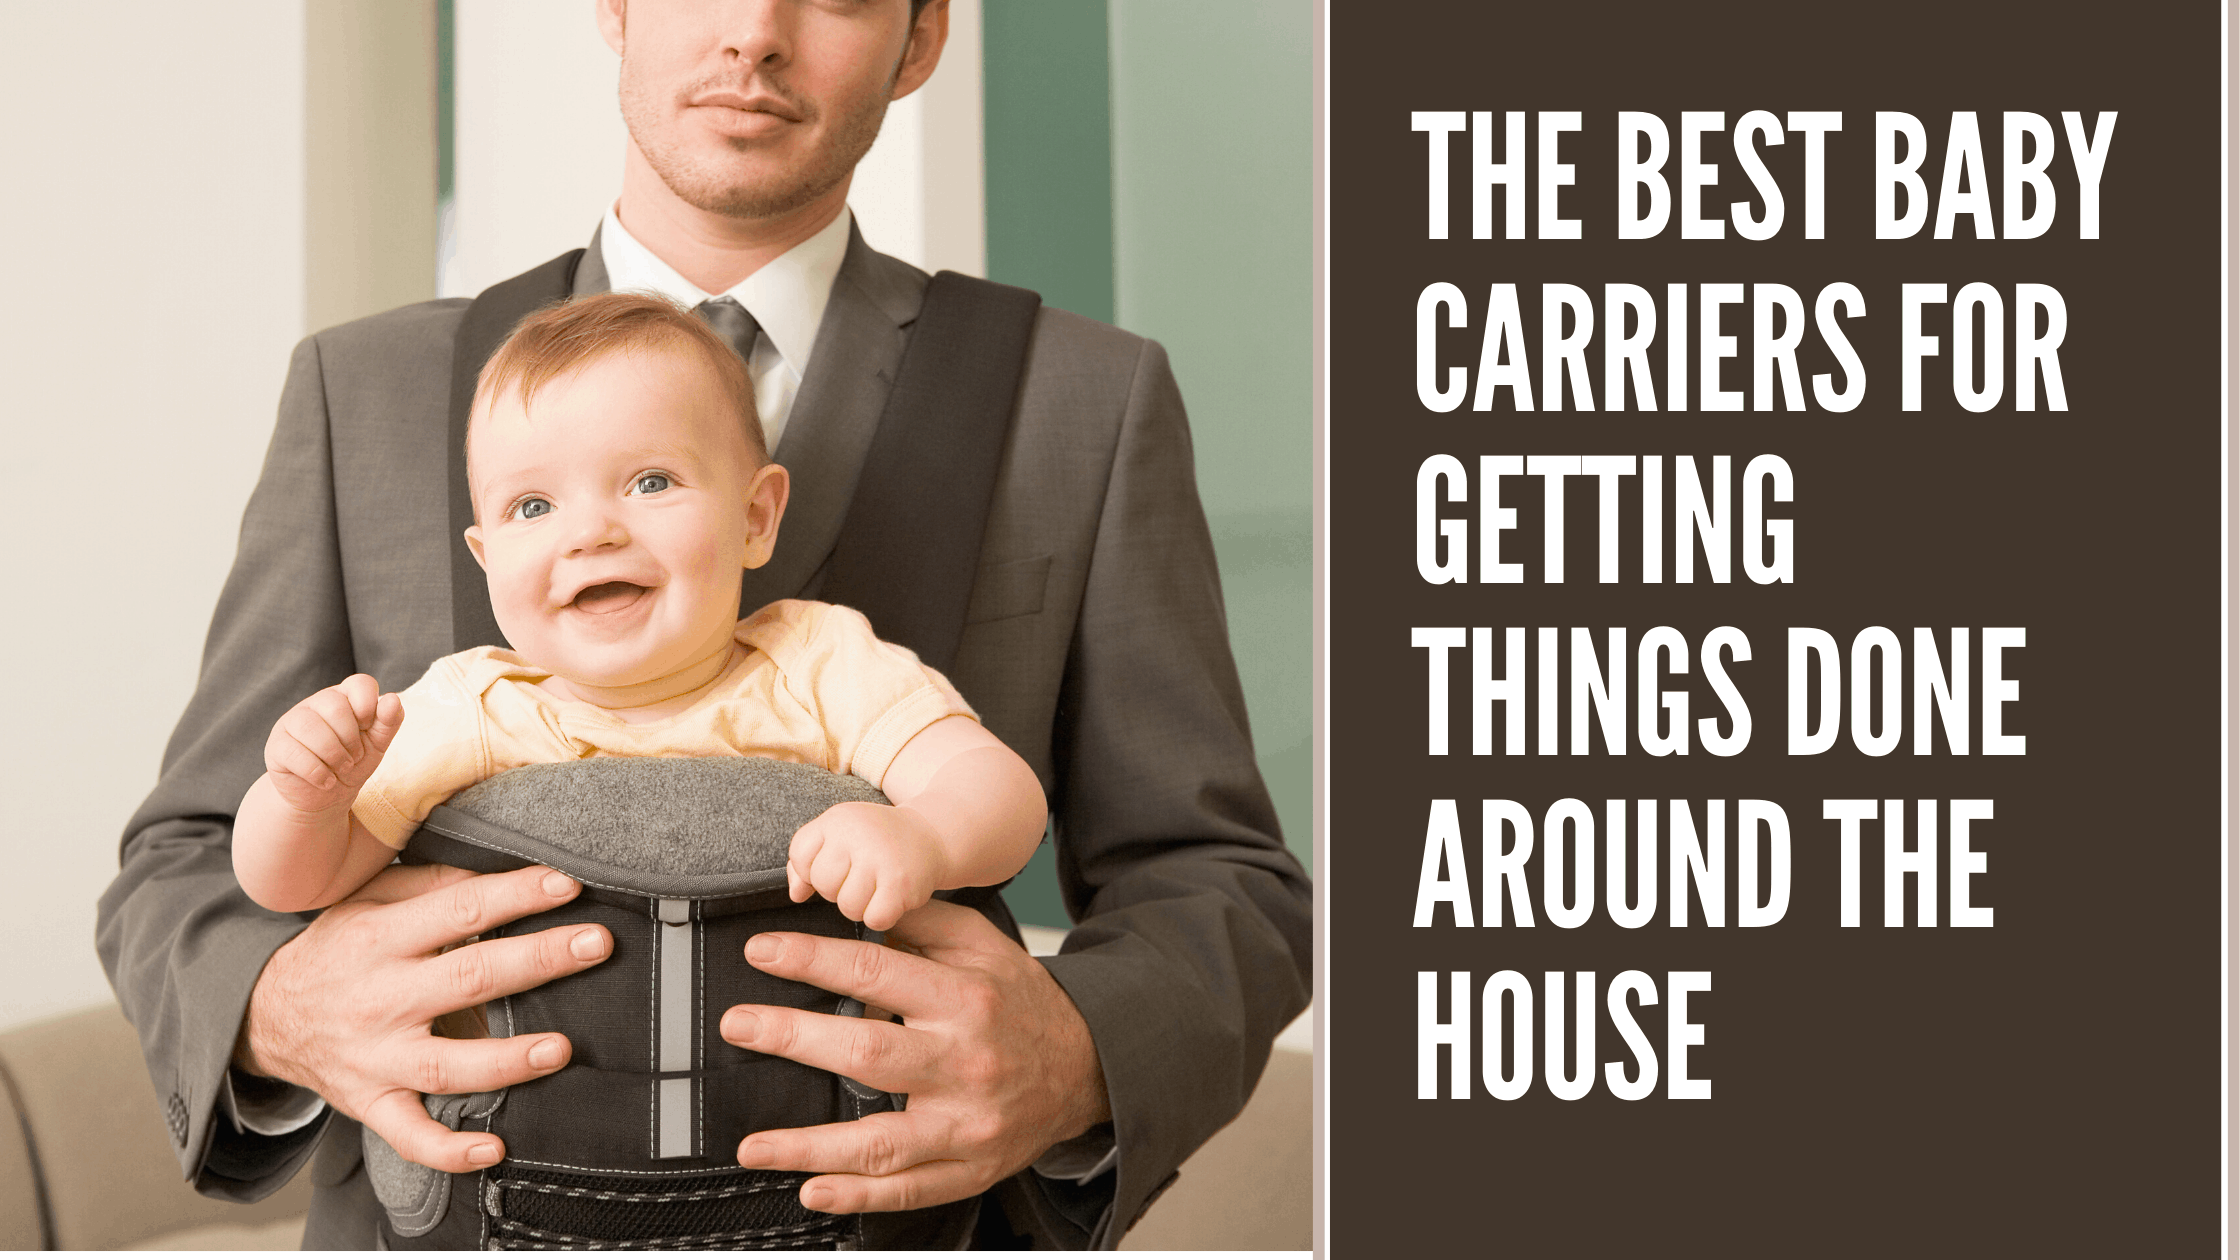 The best baby carriers for doing chores